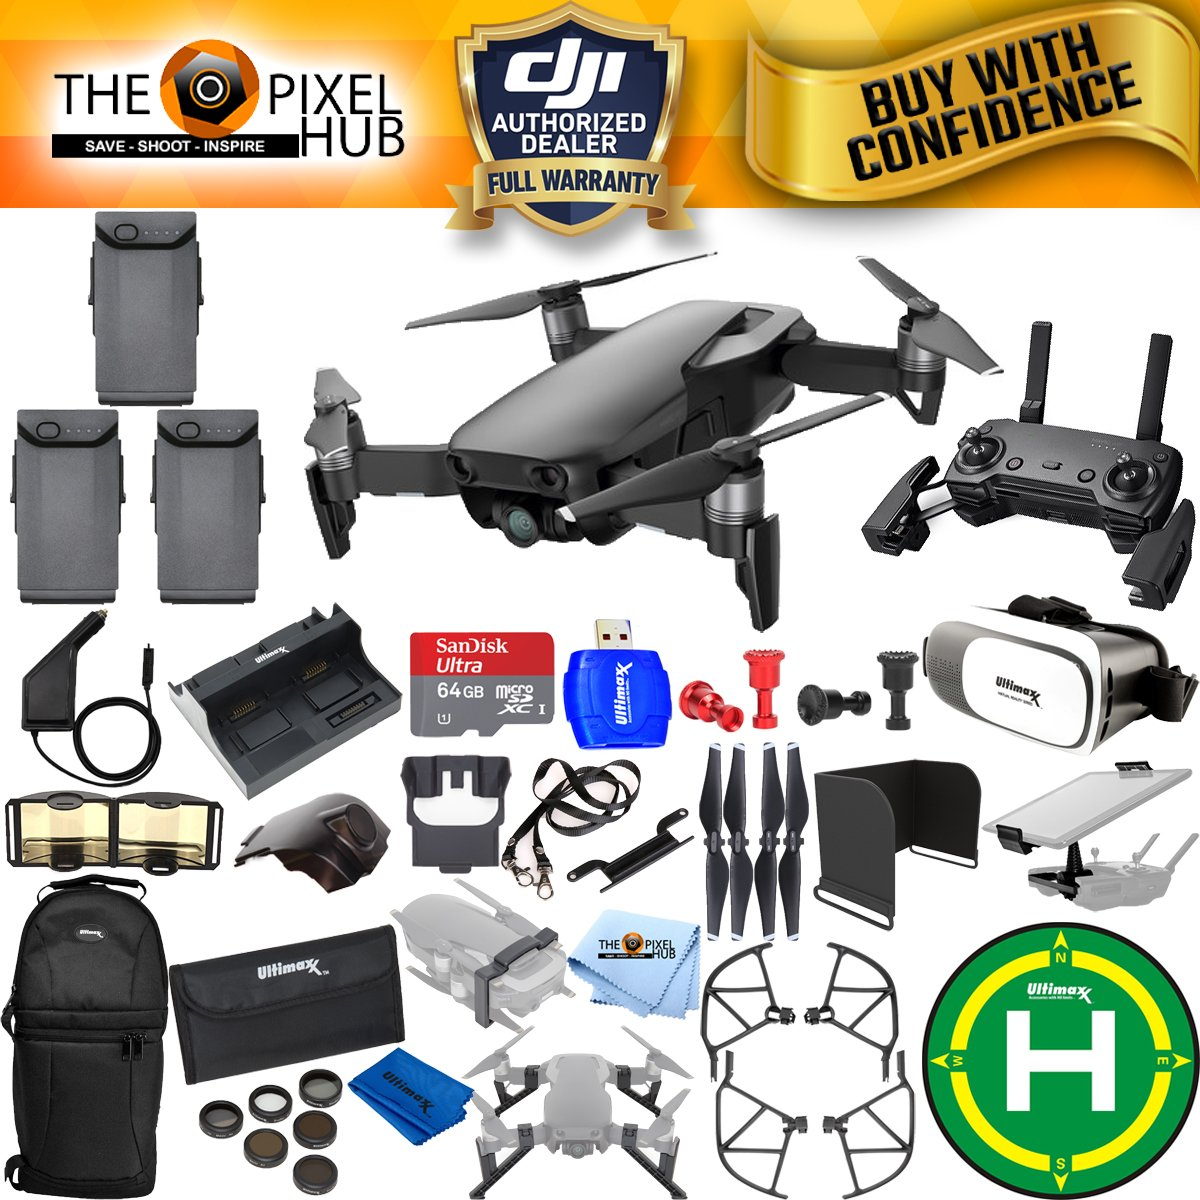 DJI Mavic Air Extreme All You Need Accessory Bundle with 64GB Micro SanDisk, 8 Piece Filter Kit, Charging Hub, Car Charger, Backpack + Much More (3 Battery (Total))